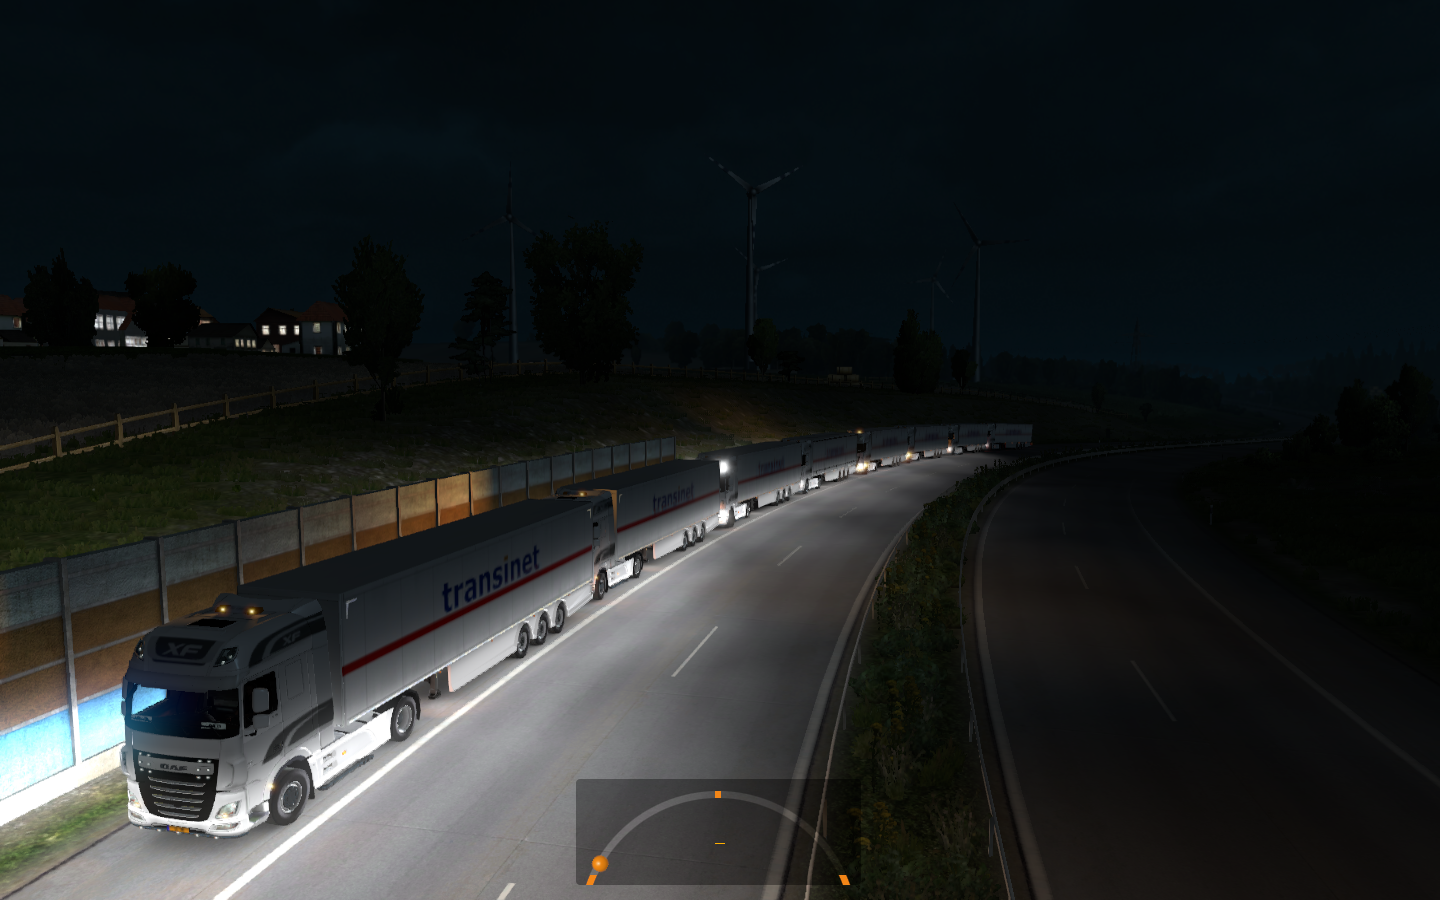 ets2_20181221_224128_00.png